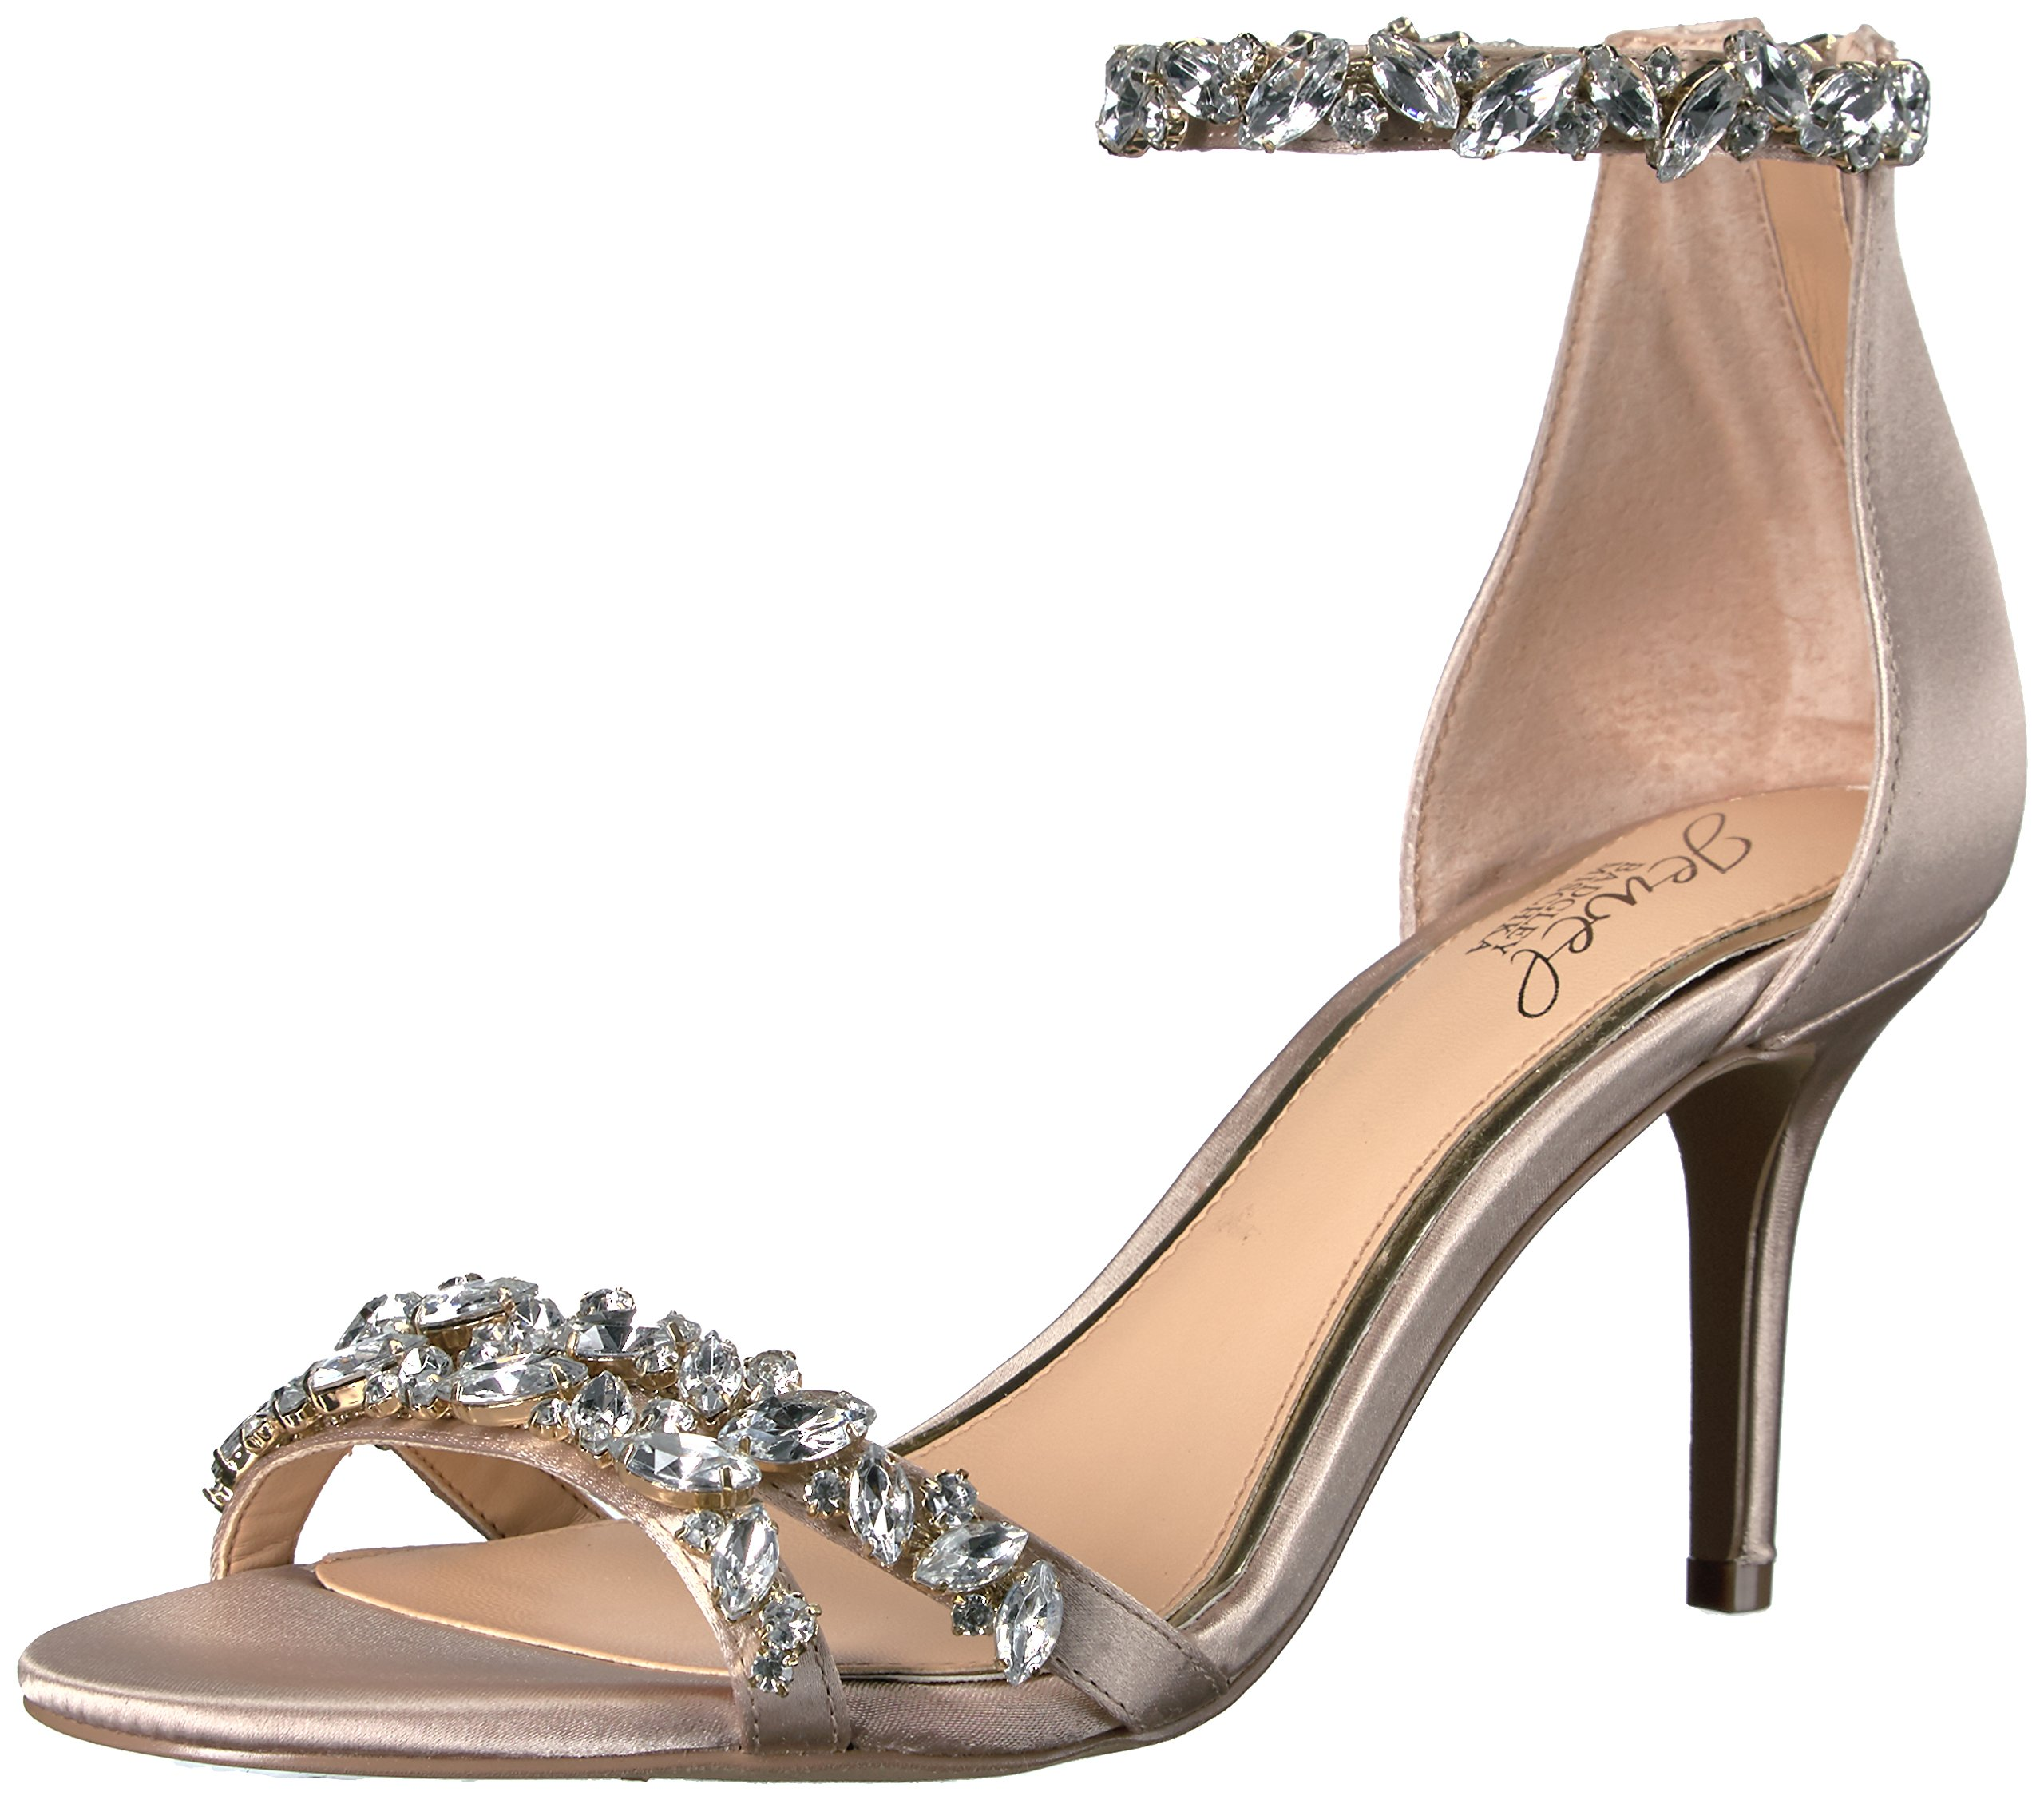 Badgley Mischka Jewel Women's Caroline Dress Sandal, Champagne, 8 M US by Badgley Mischka